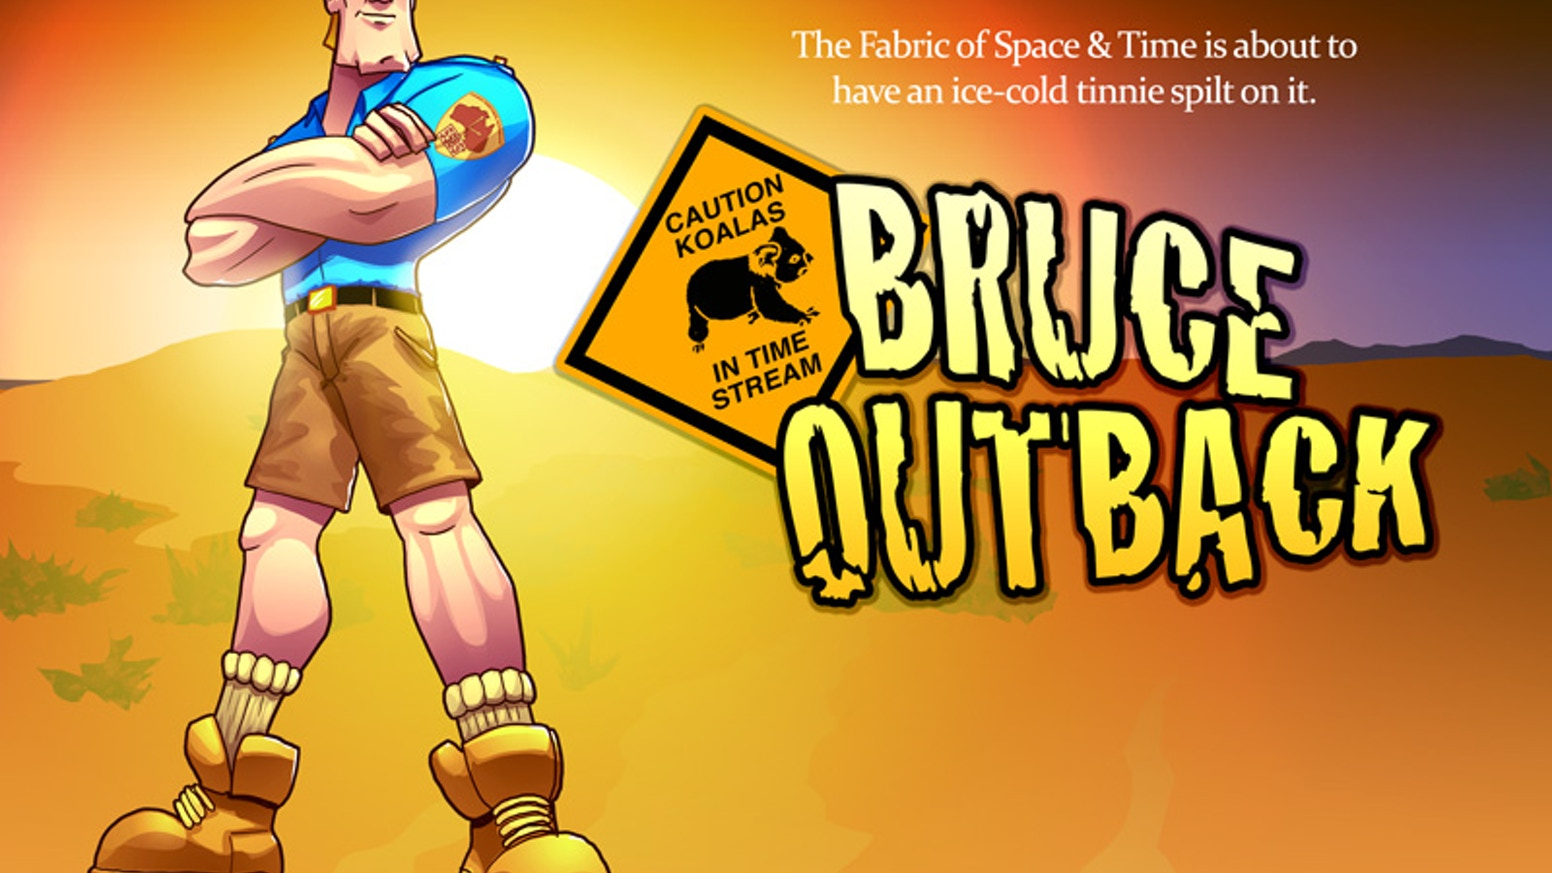 Bruce Outback is Australia's greatest detective, sent back through time with his Koala to help crack previously unsolved crimes!